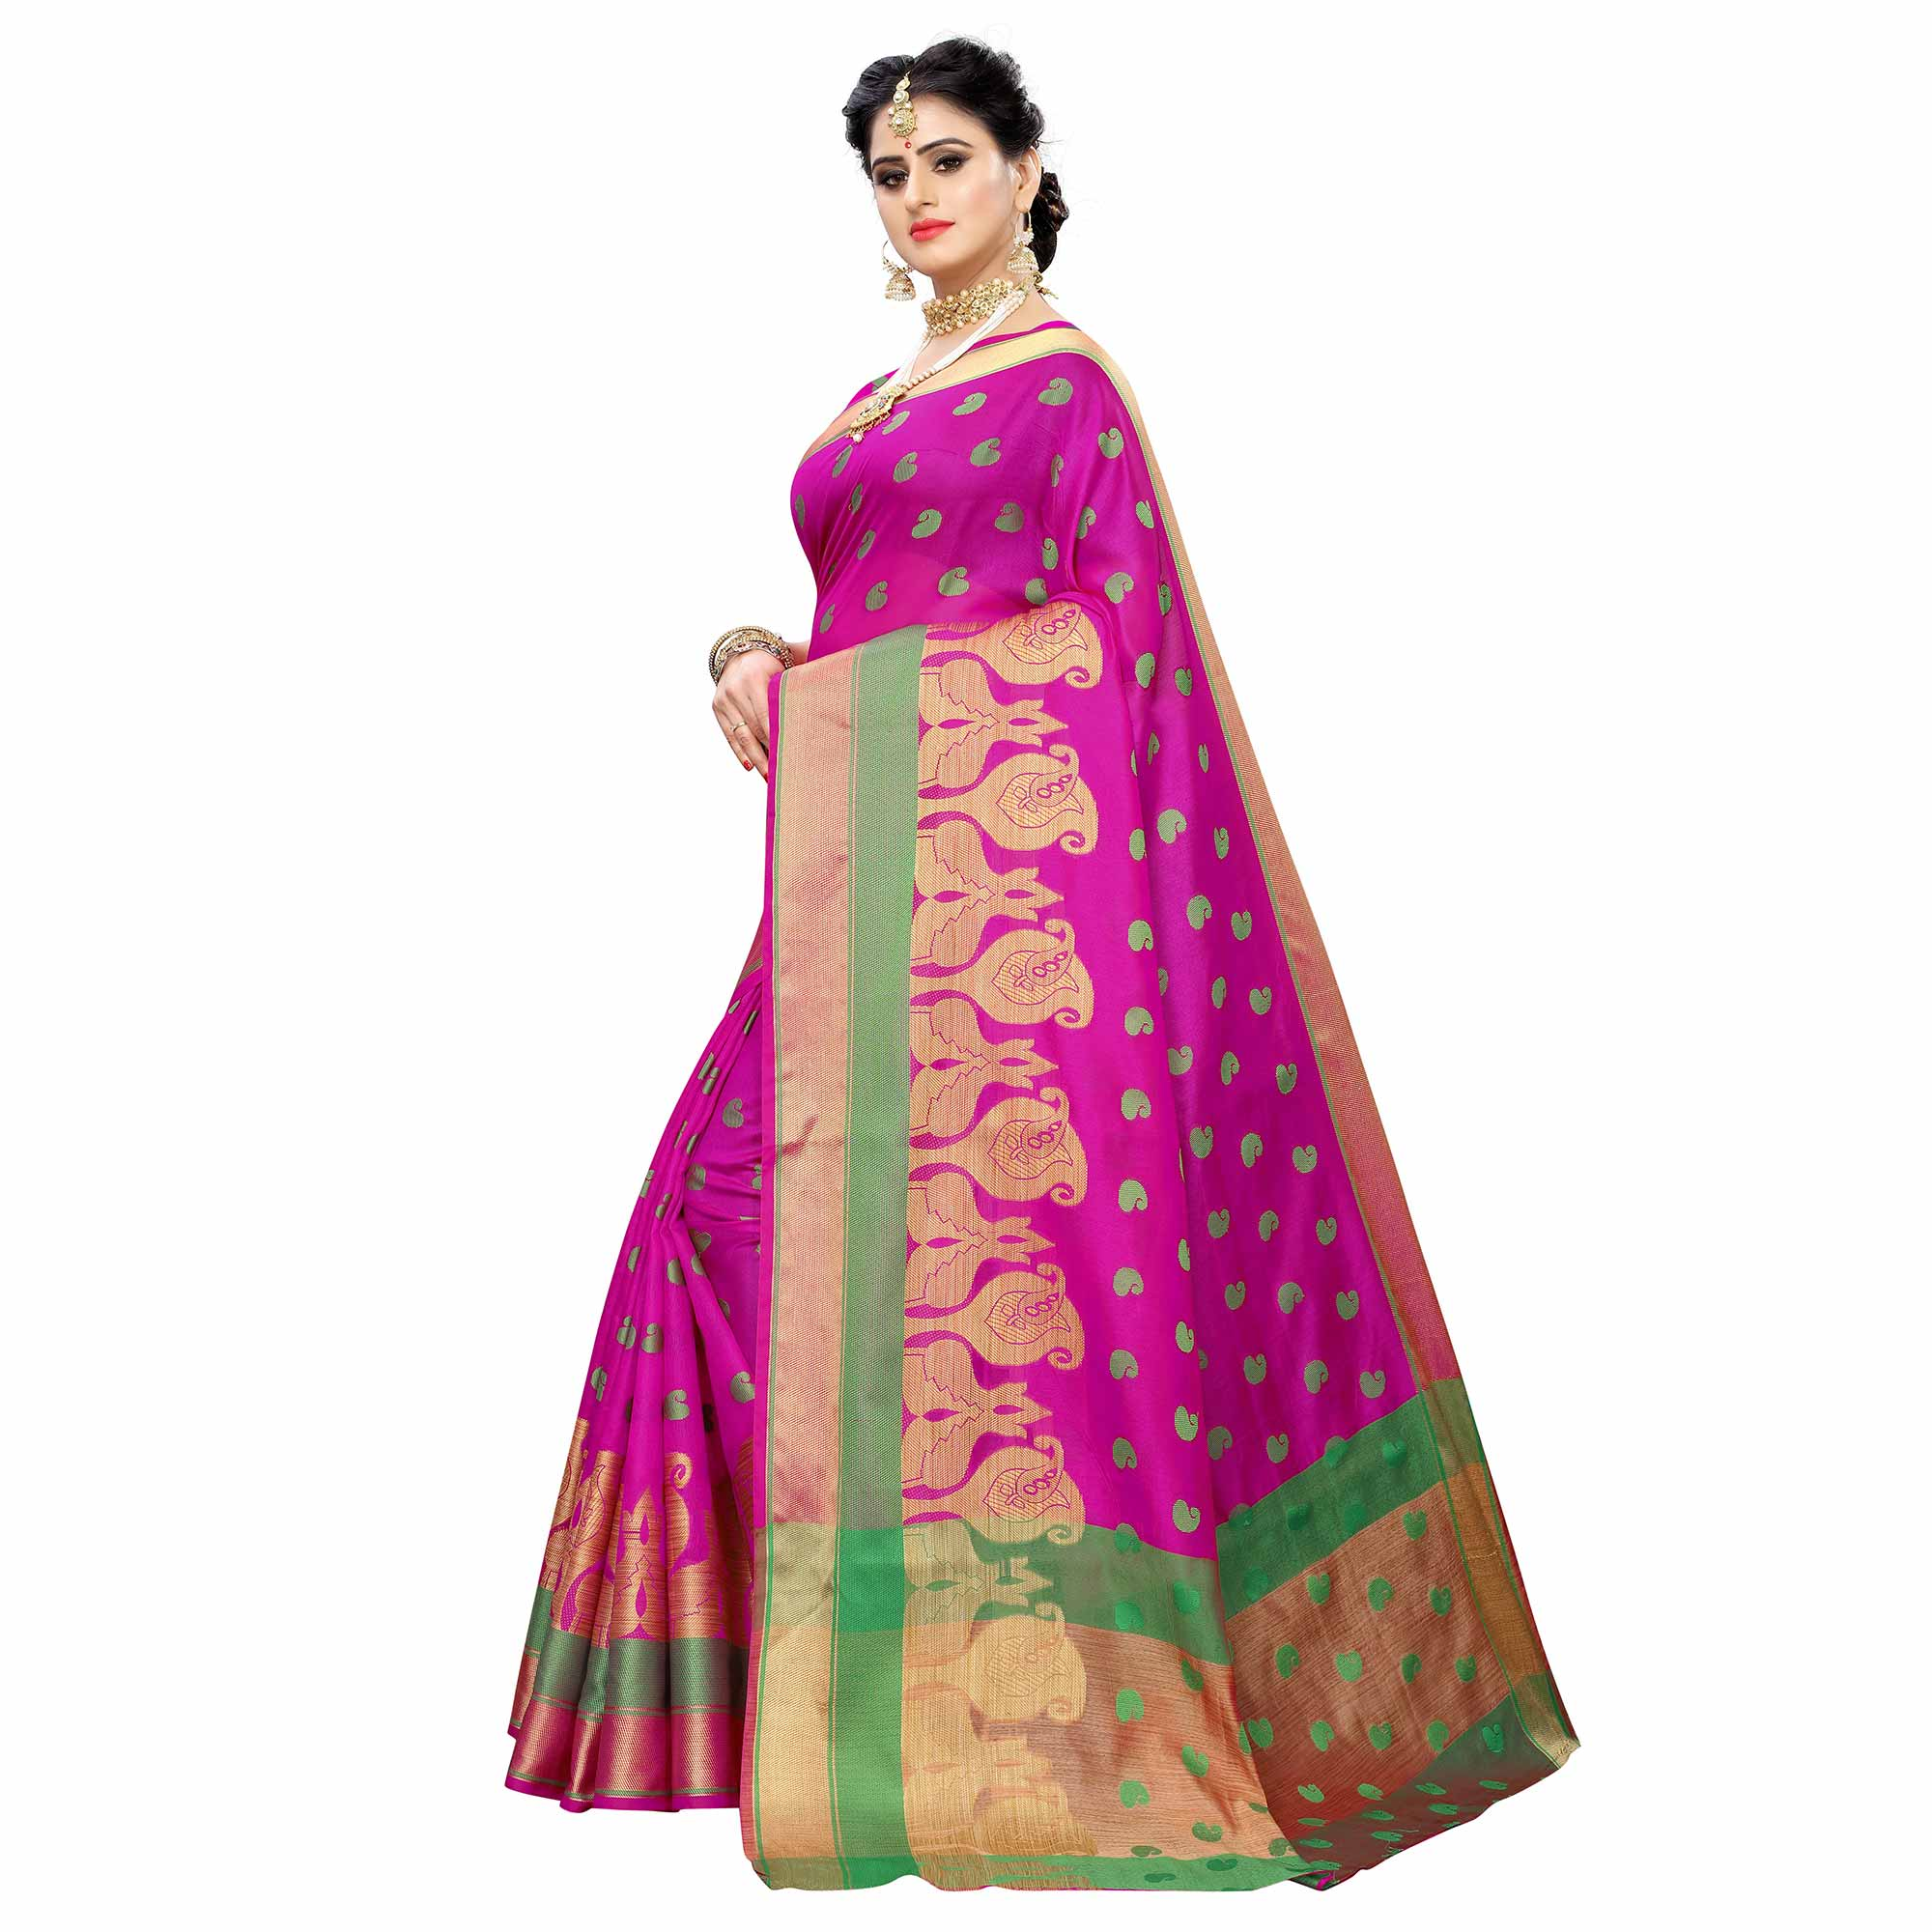 Energetic Pink Colored Festive Wear Woven Raw Silk Saree